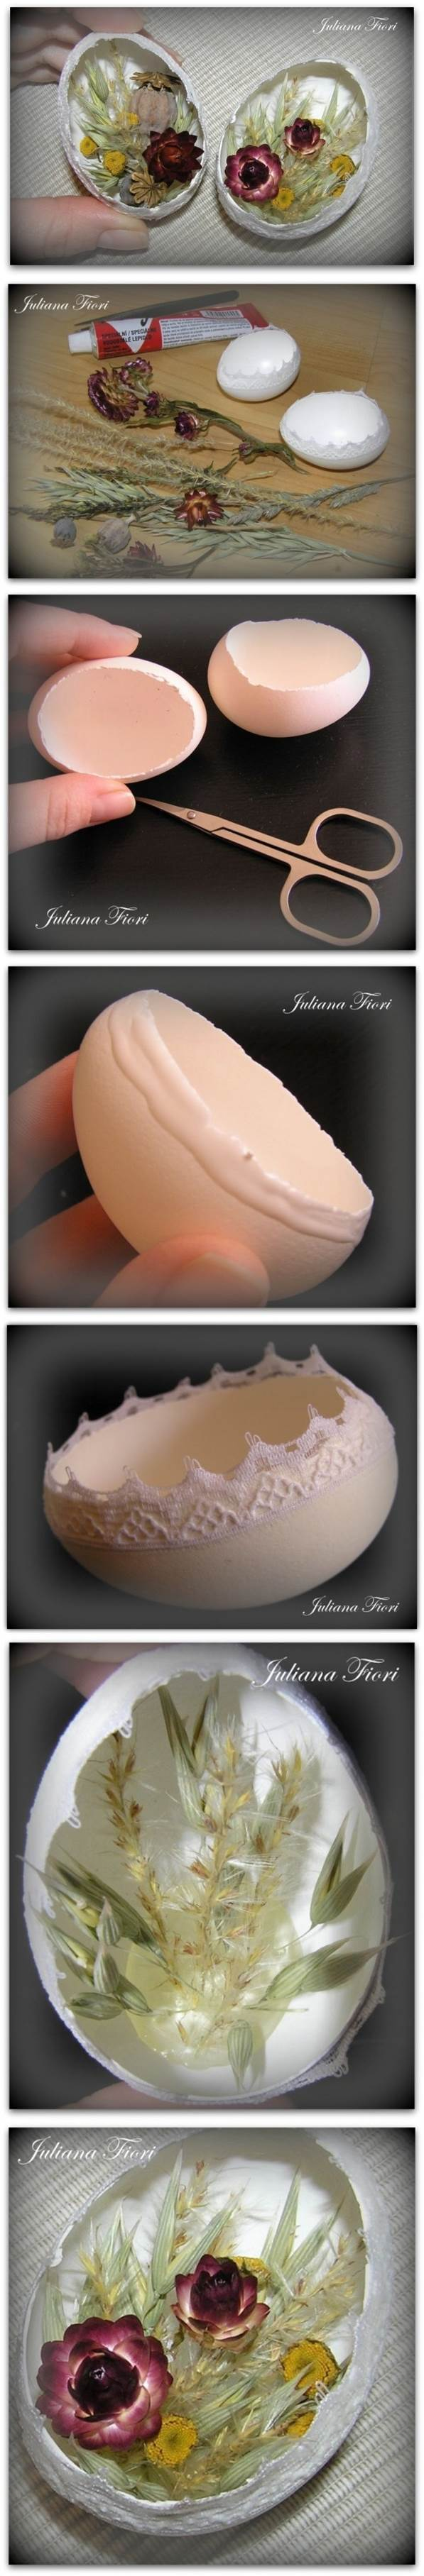 DIY Decorated Eggshell with Lace and Dried Flowers 2